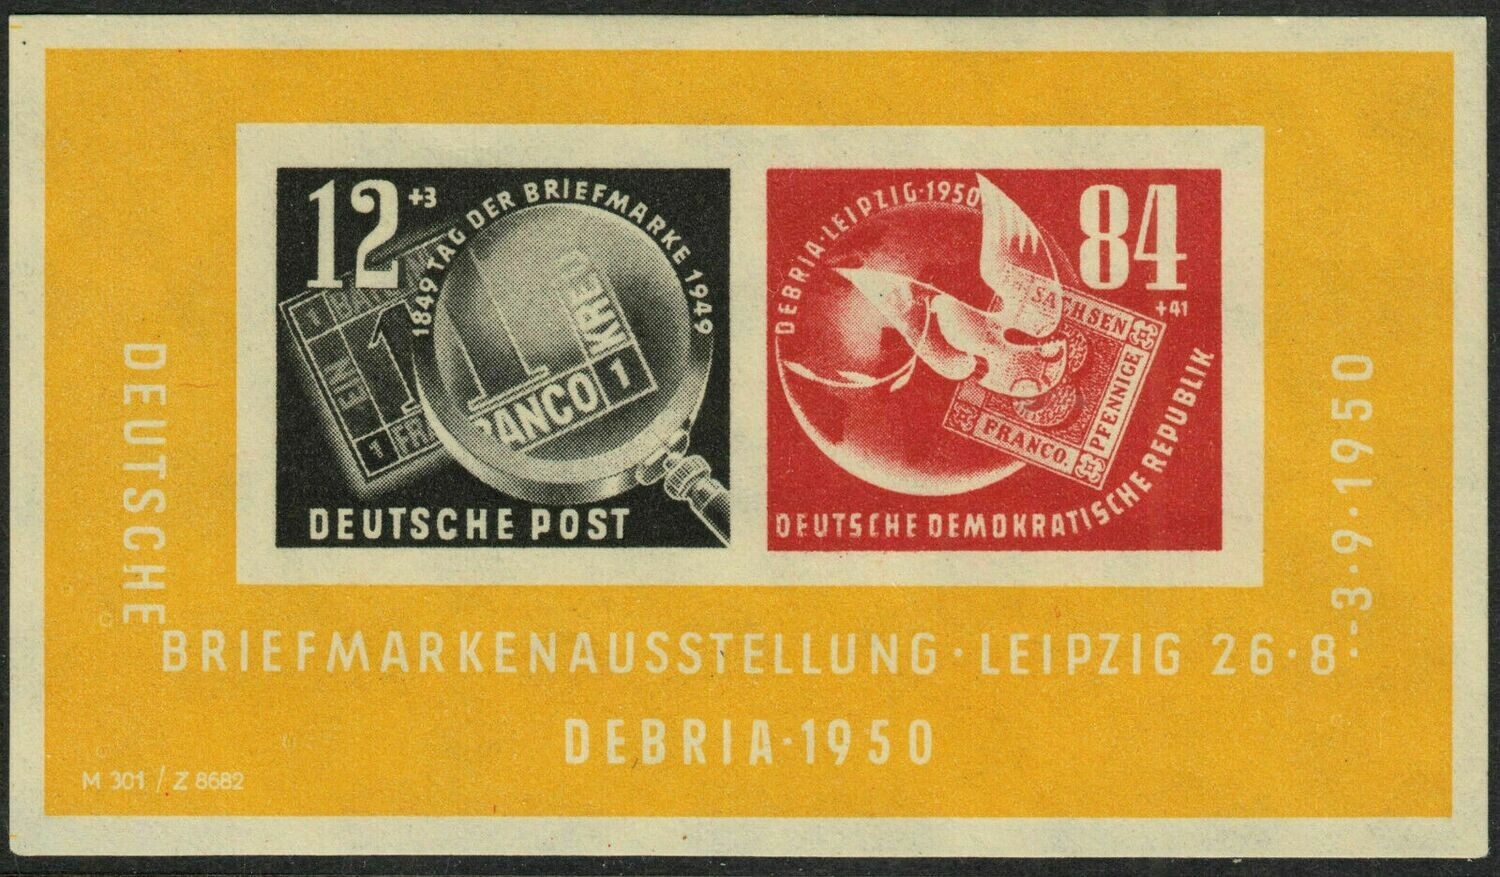 Germany (East) 1950 DEBRIA Stamp Exhibition Miniature Sheet MH